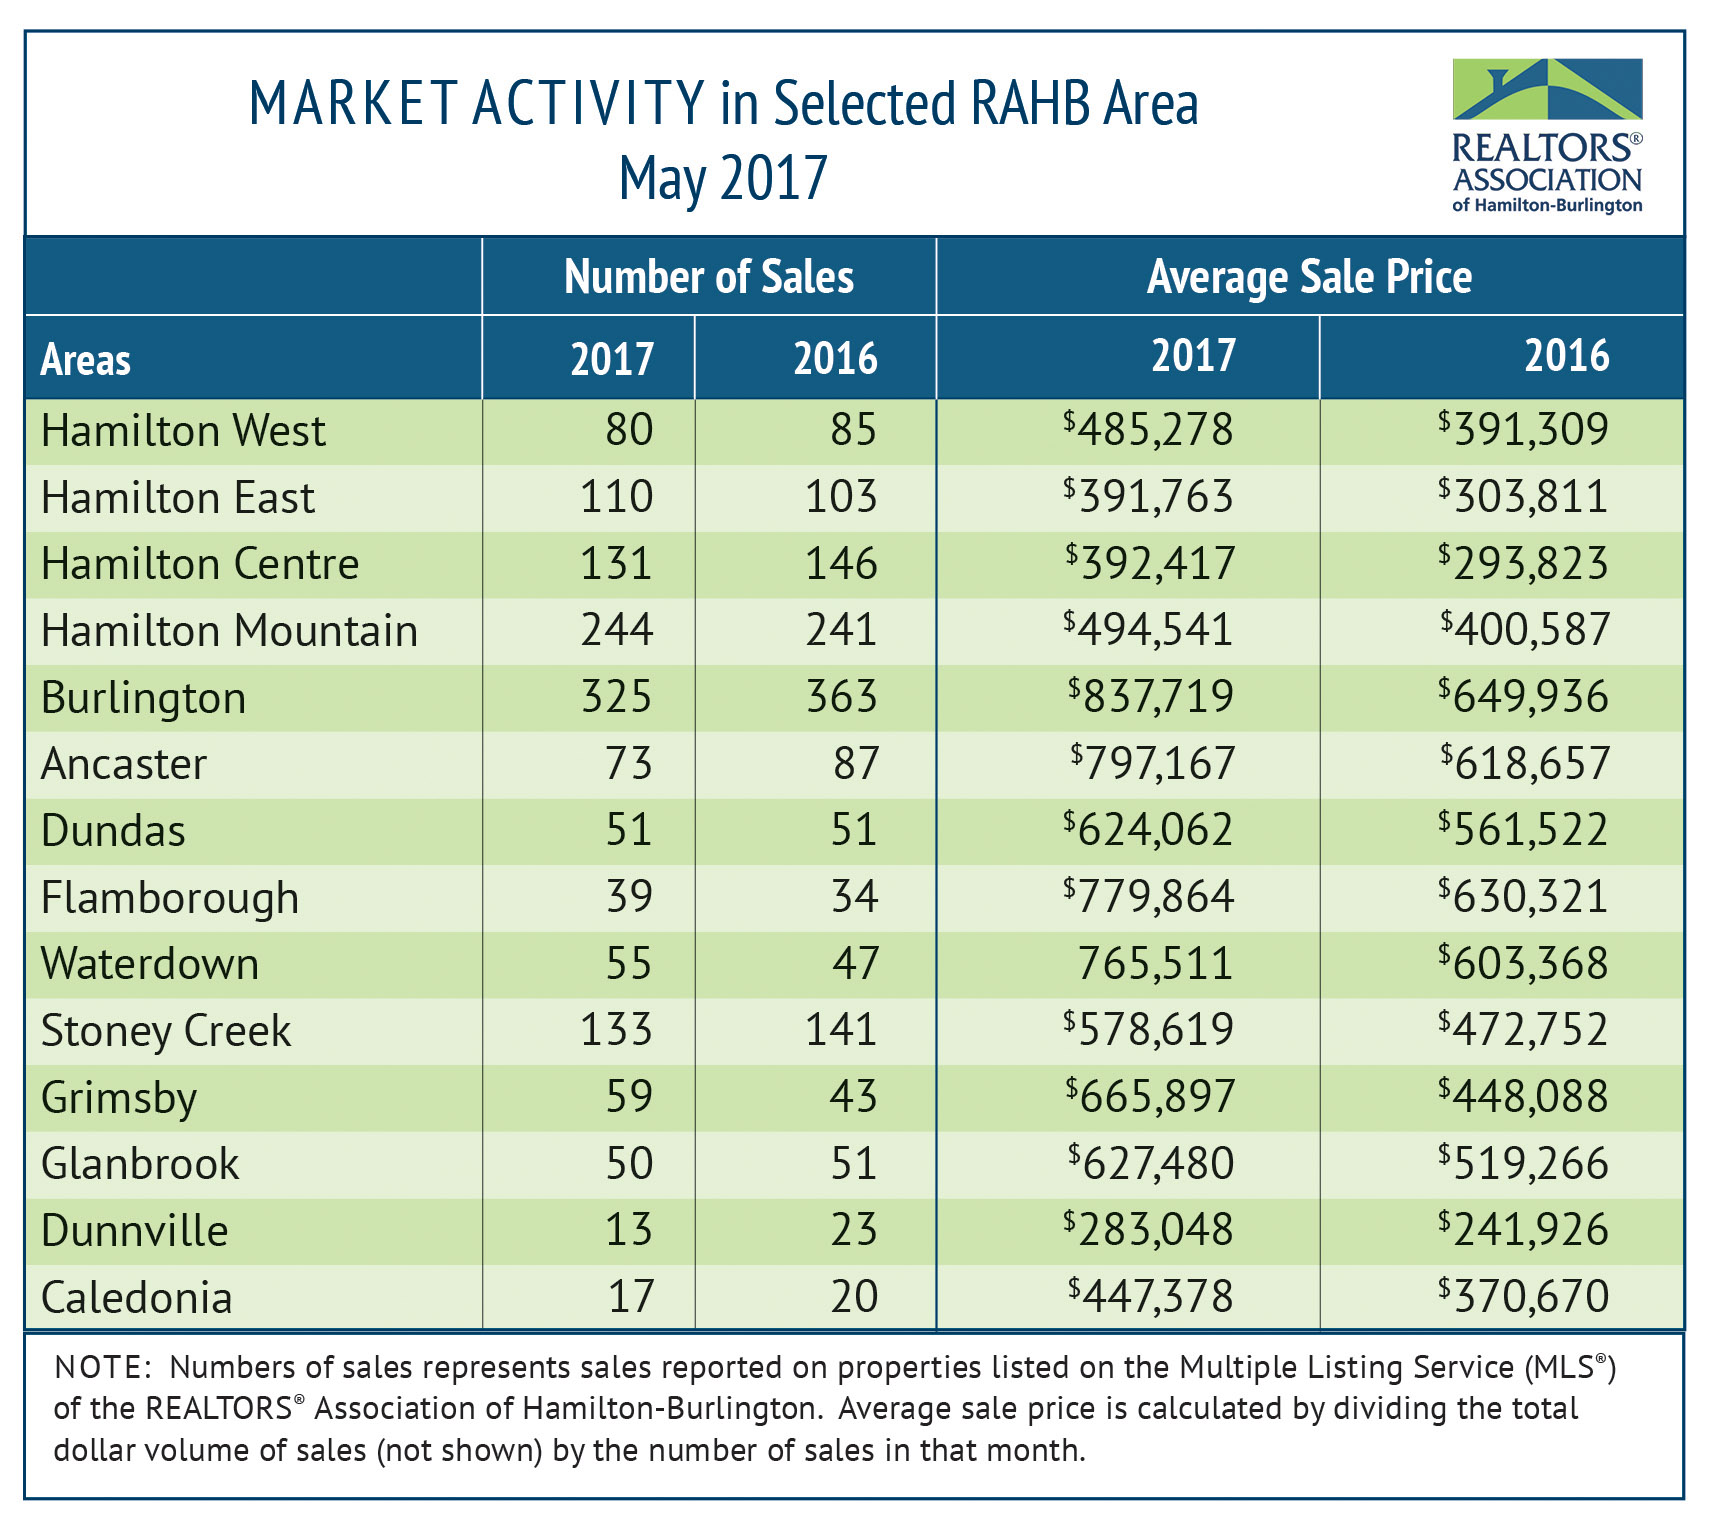 RAHB Market Activity May 2017